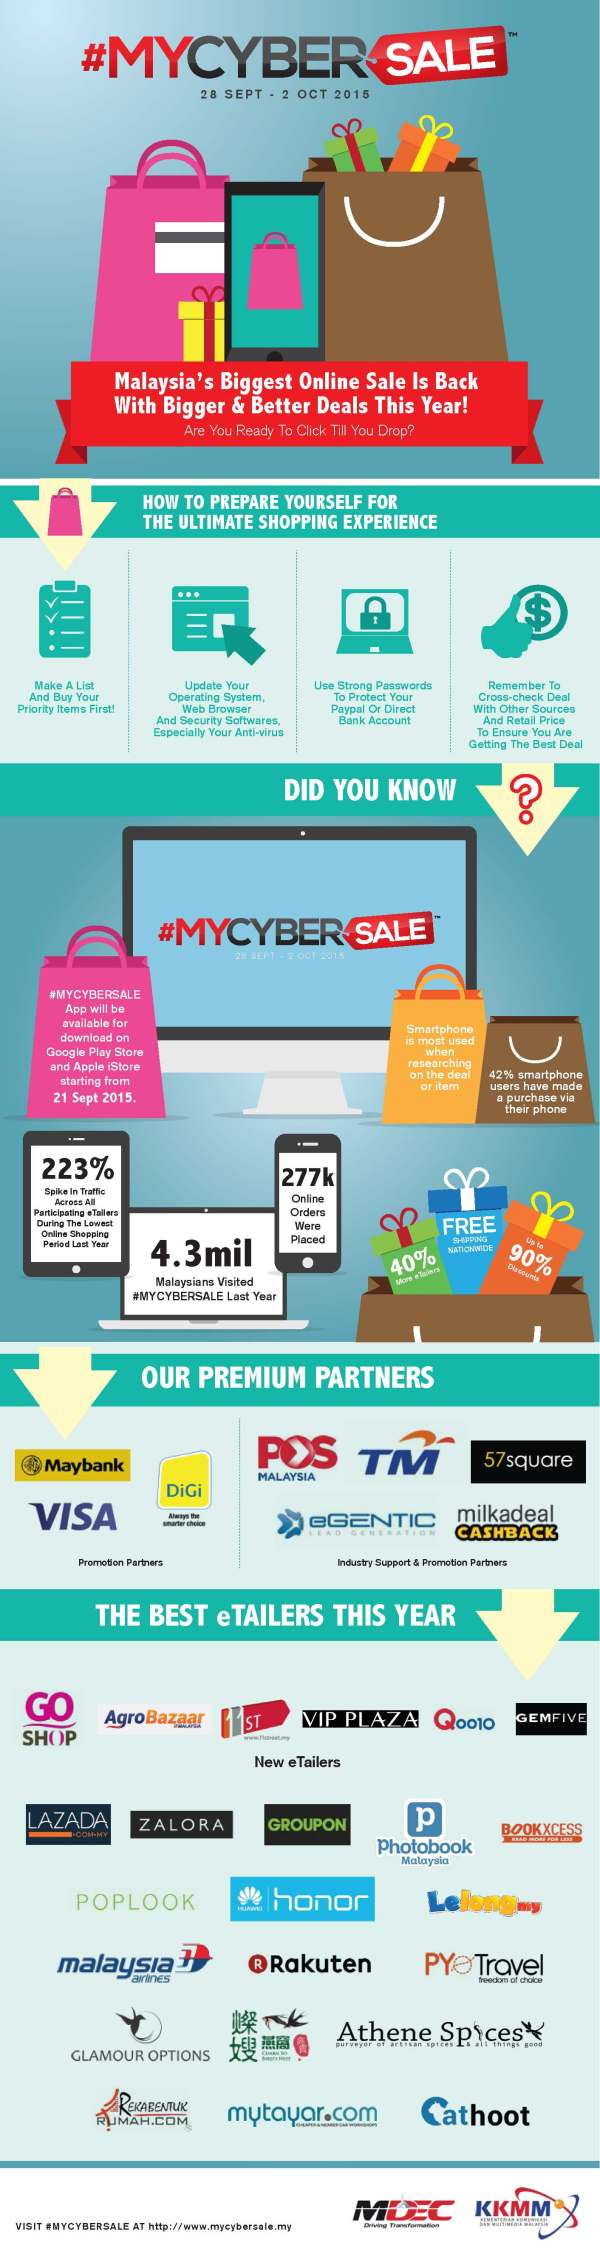 #MYCYBERSALE_Infographic_FINAL